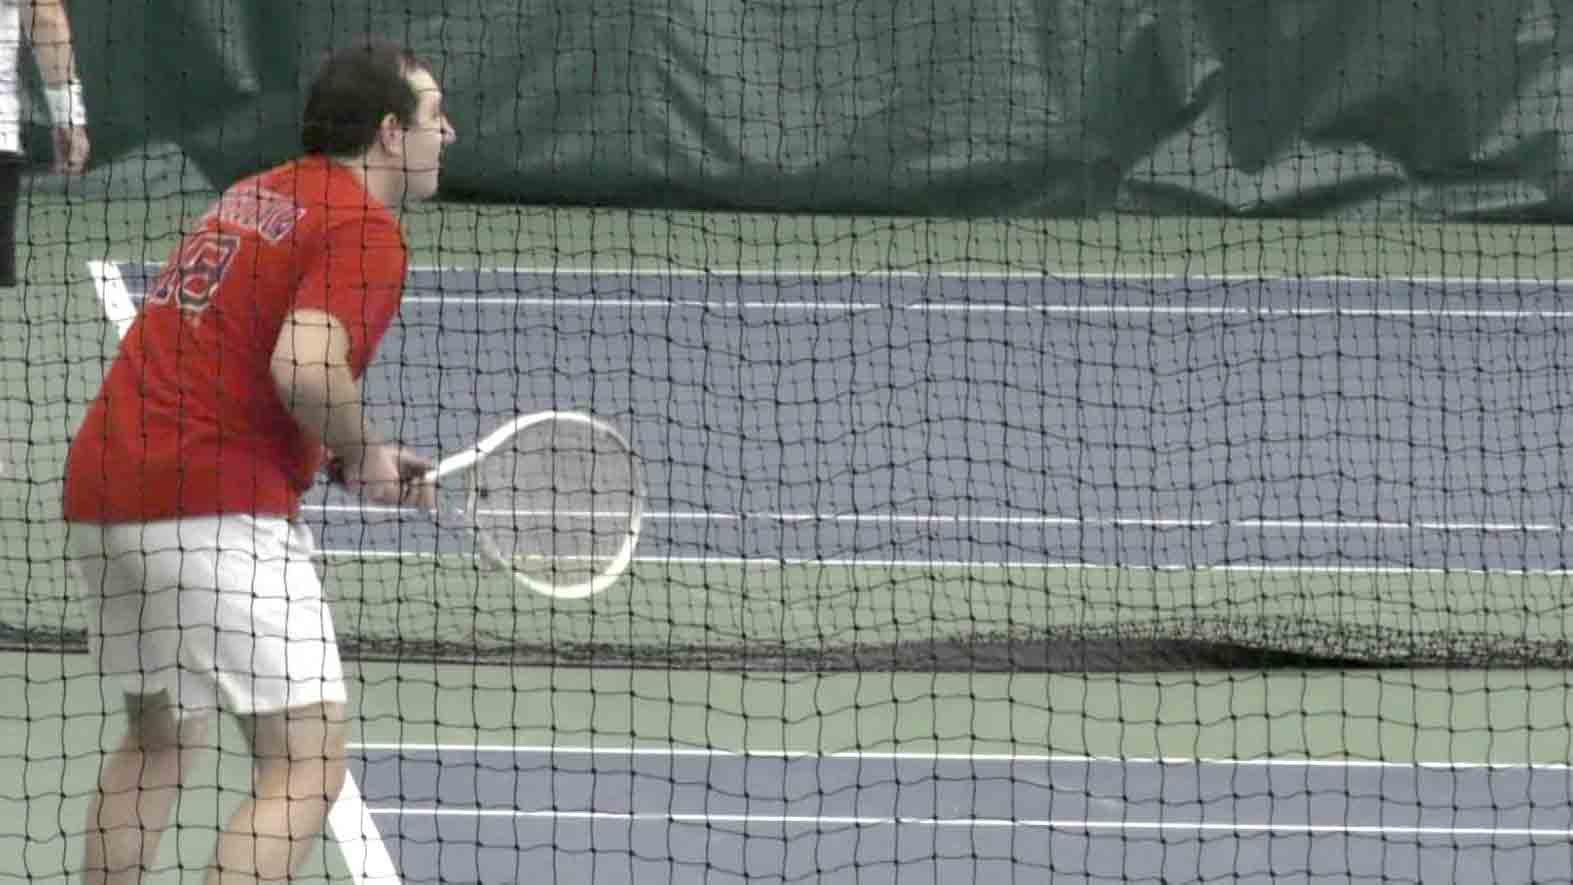 One of the athletes in the Virginia Experience Special Olympics Tennis Tournament during his match.